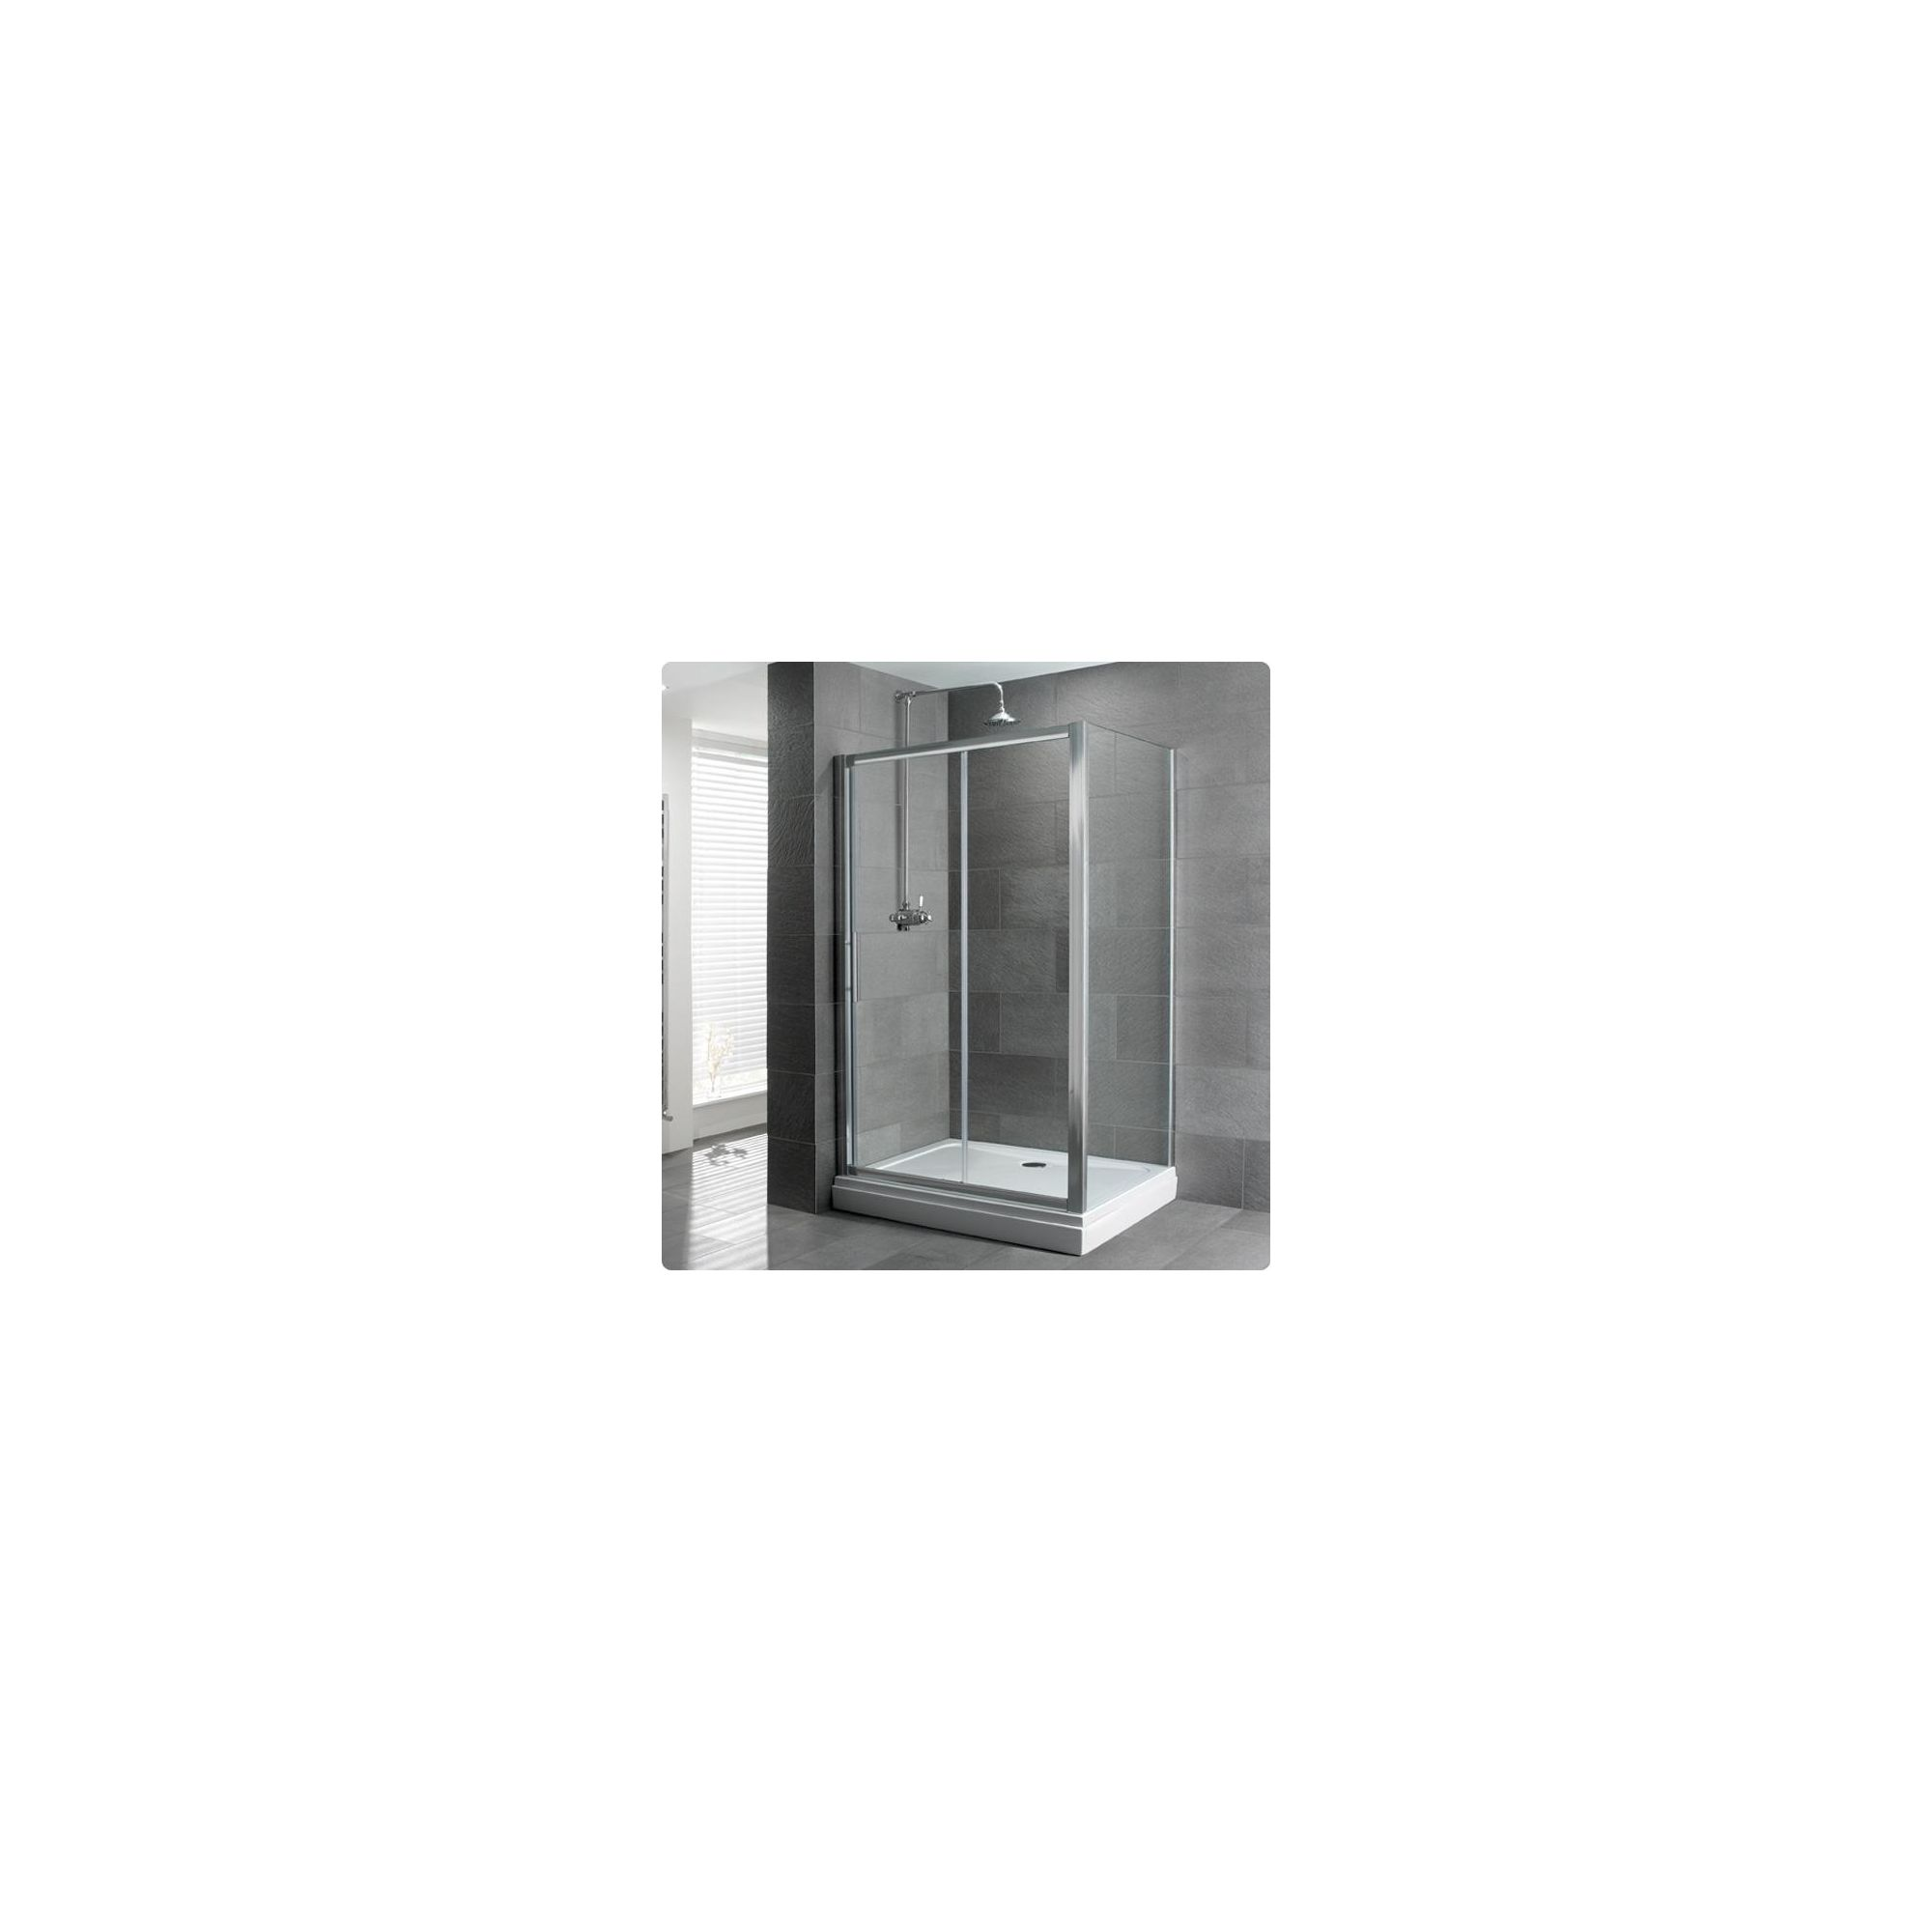 Duchy Select Silver Single Sliding Door Shower Enclosure, 1000mm x 900mm, Standard Tray, 6mm Glass at Tesco Direct